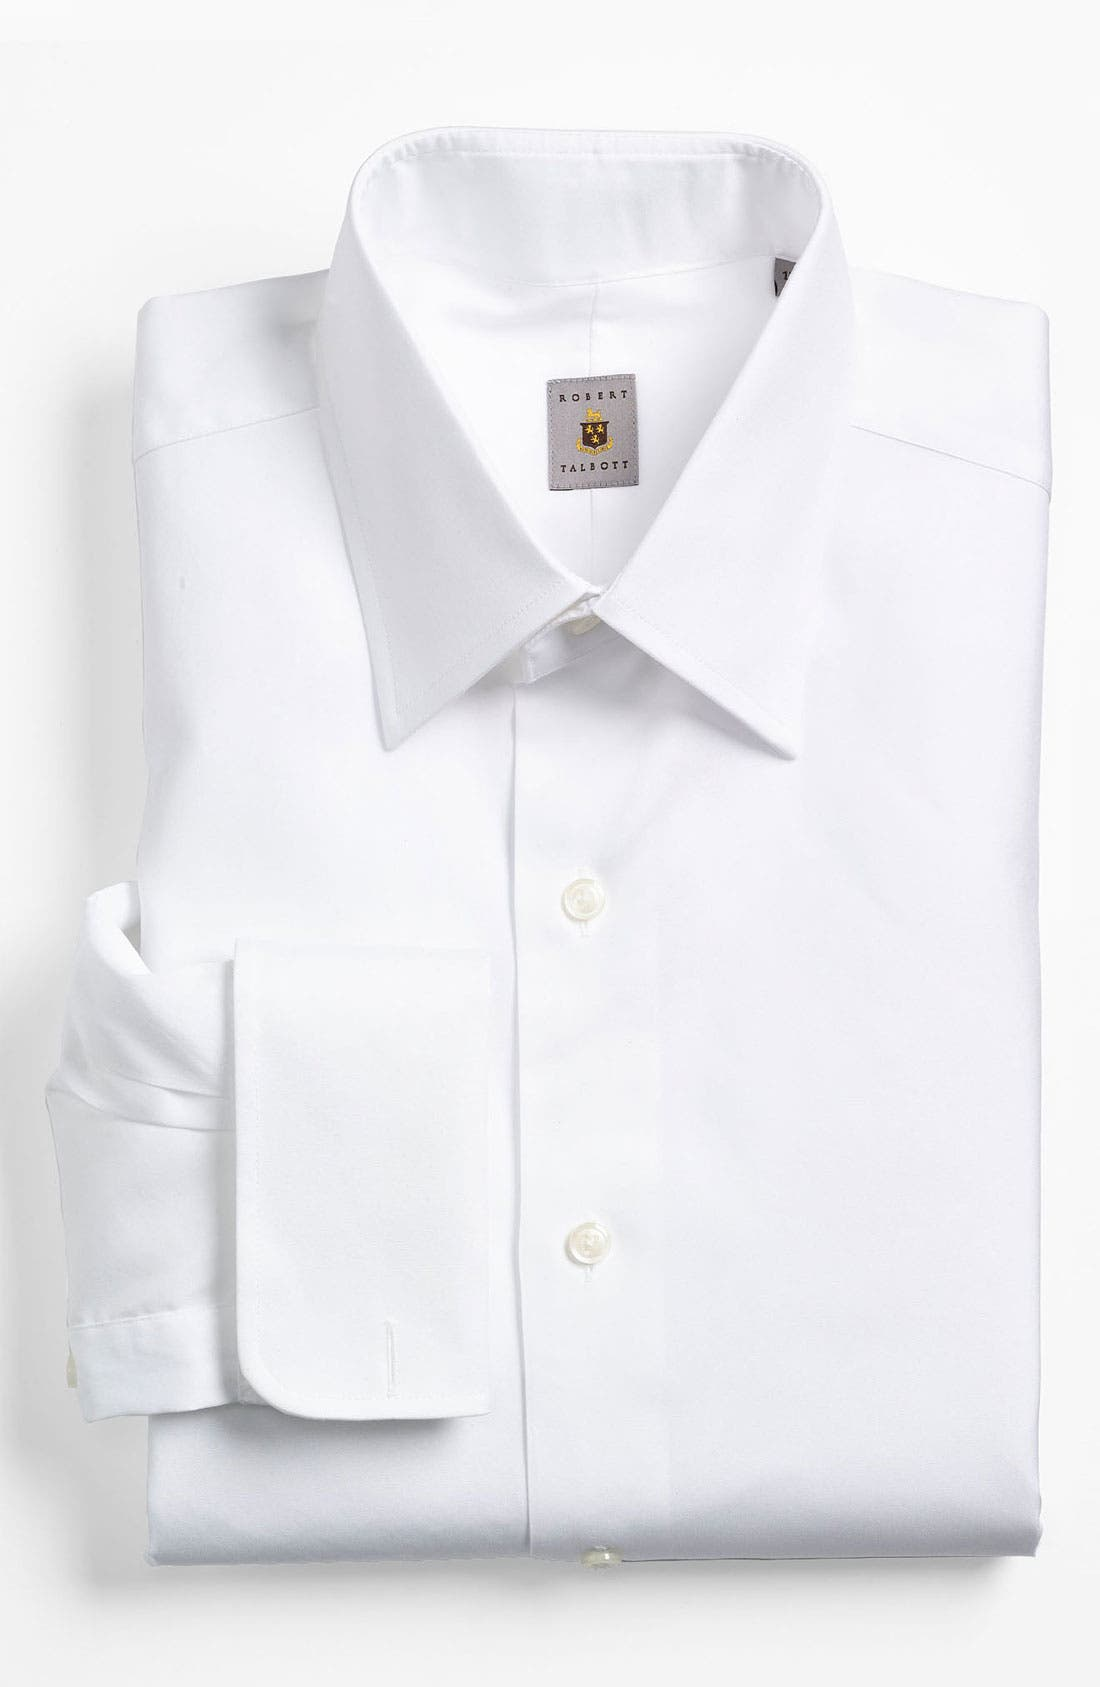 Alternate Image 1 Selected - Robert Talbott Regular Fit Tuxedo Shirt (Online Only)